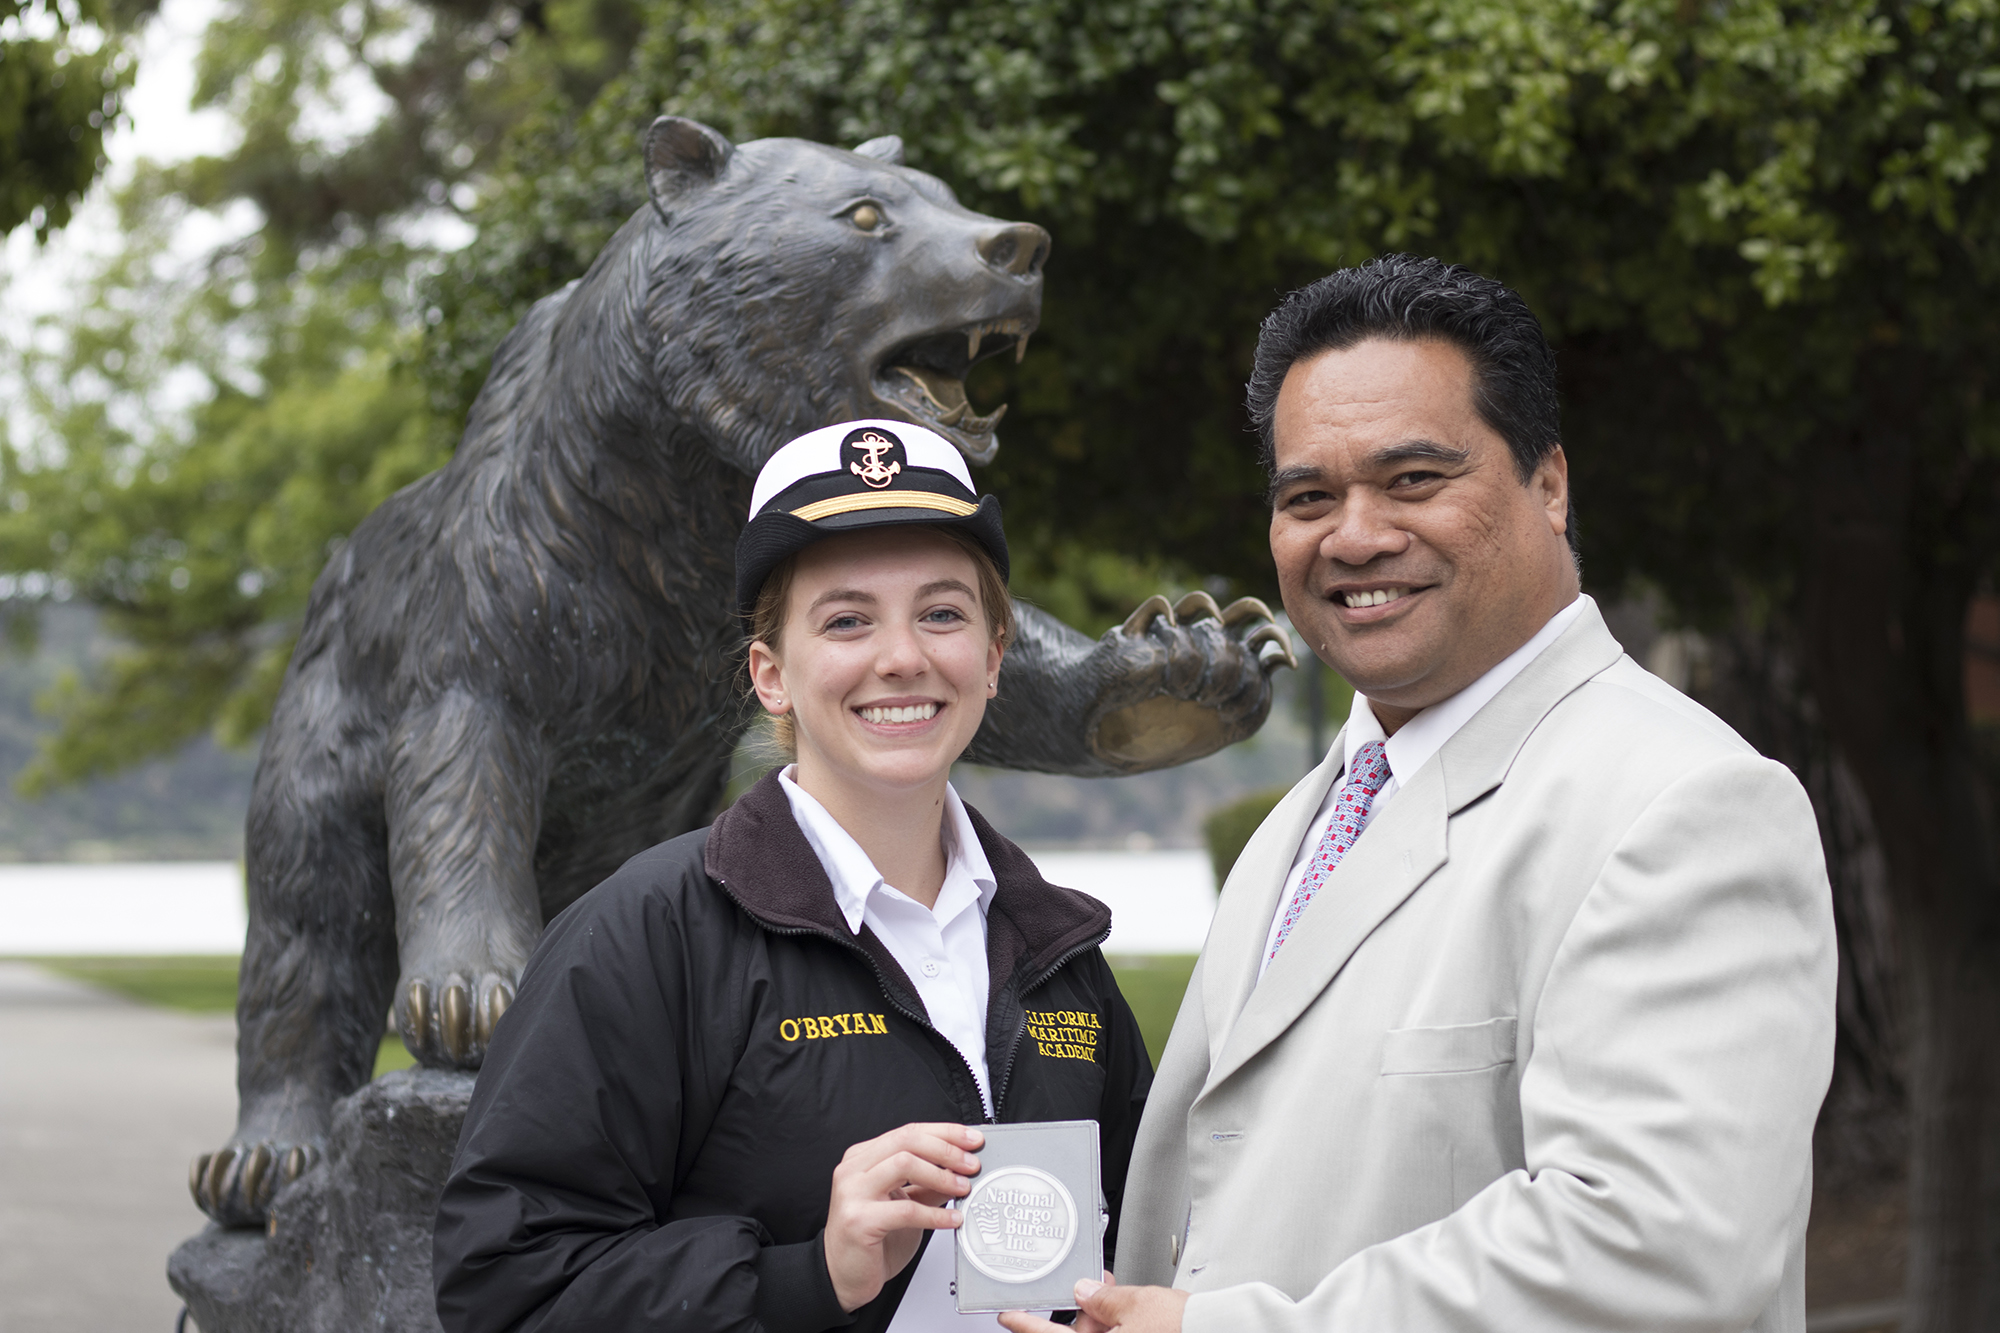 Capt. Fotu presenting Cadet Elizabeth O'Bryan with the NCB Excellence in Cargo Operations Award at California Maritime Academy April 18 2018